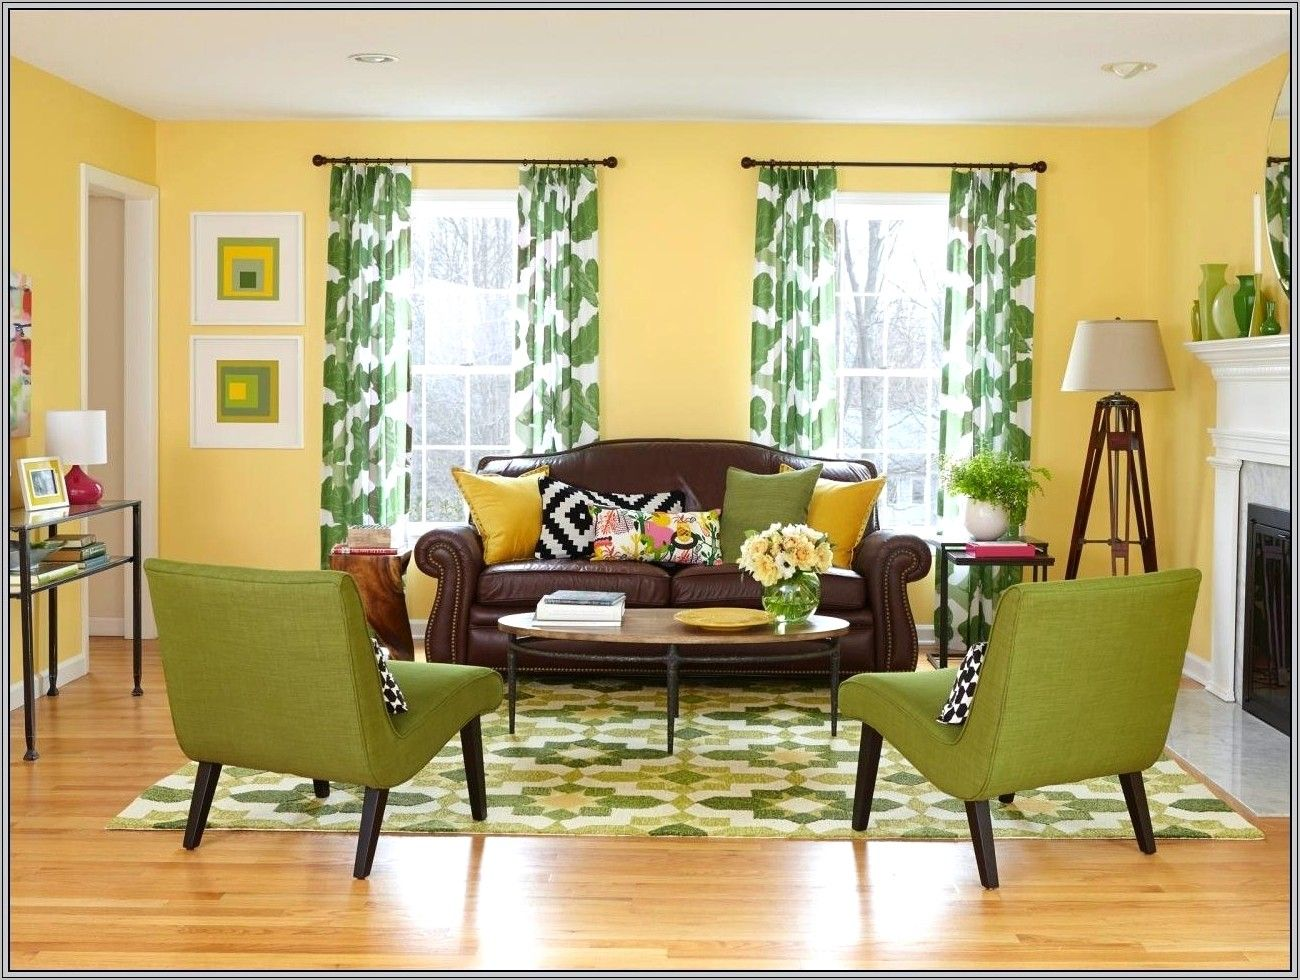 Dining Room Ideas With Yellow Walls in 2020   Brown living ...